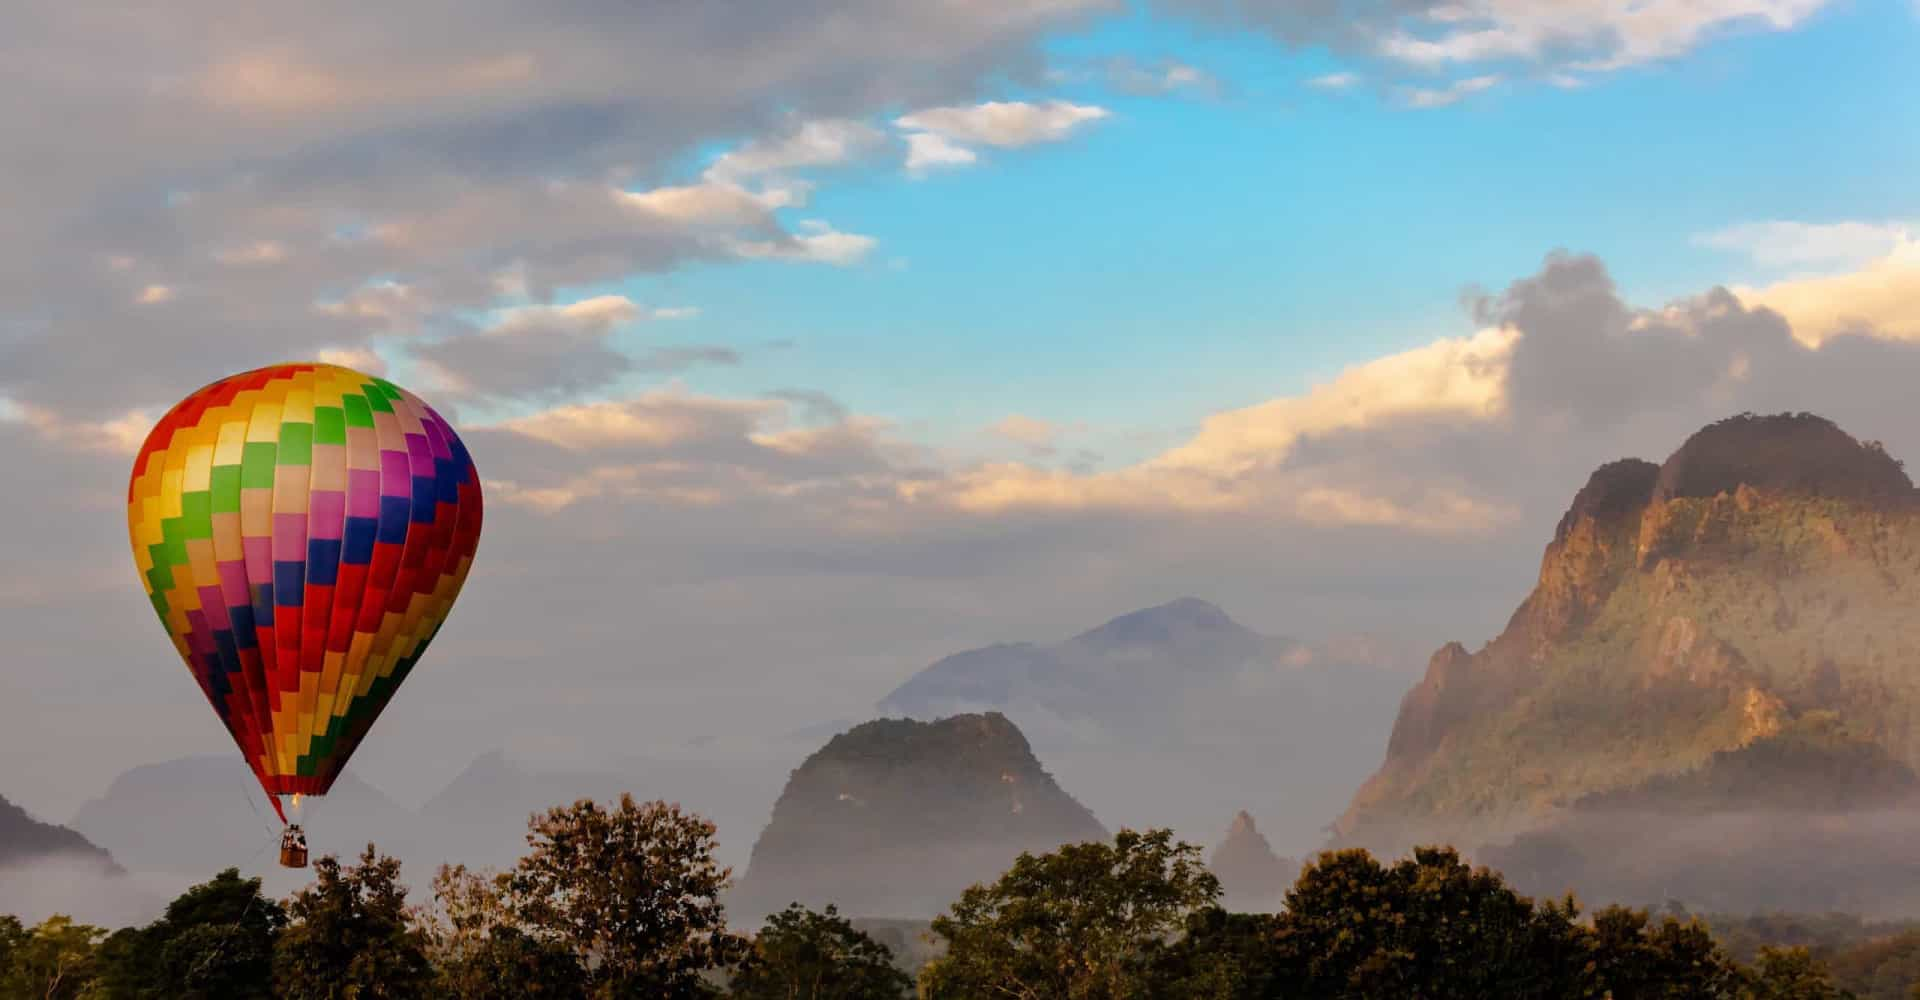 Breath-taking balloon journeys from around the world